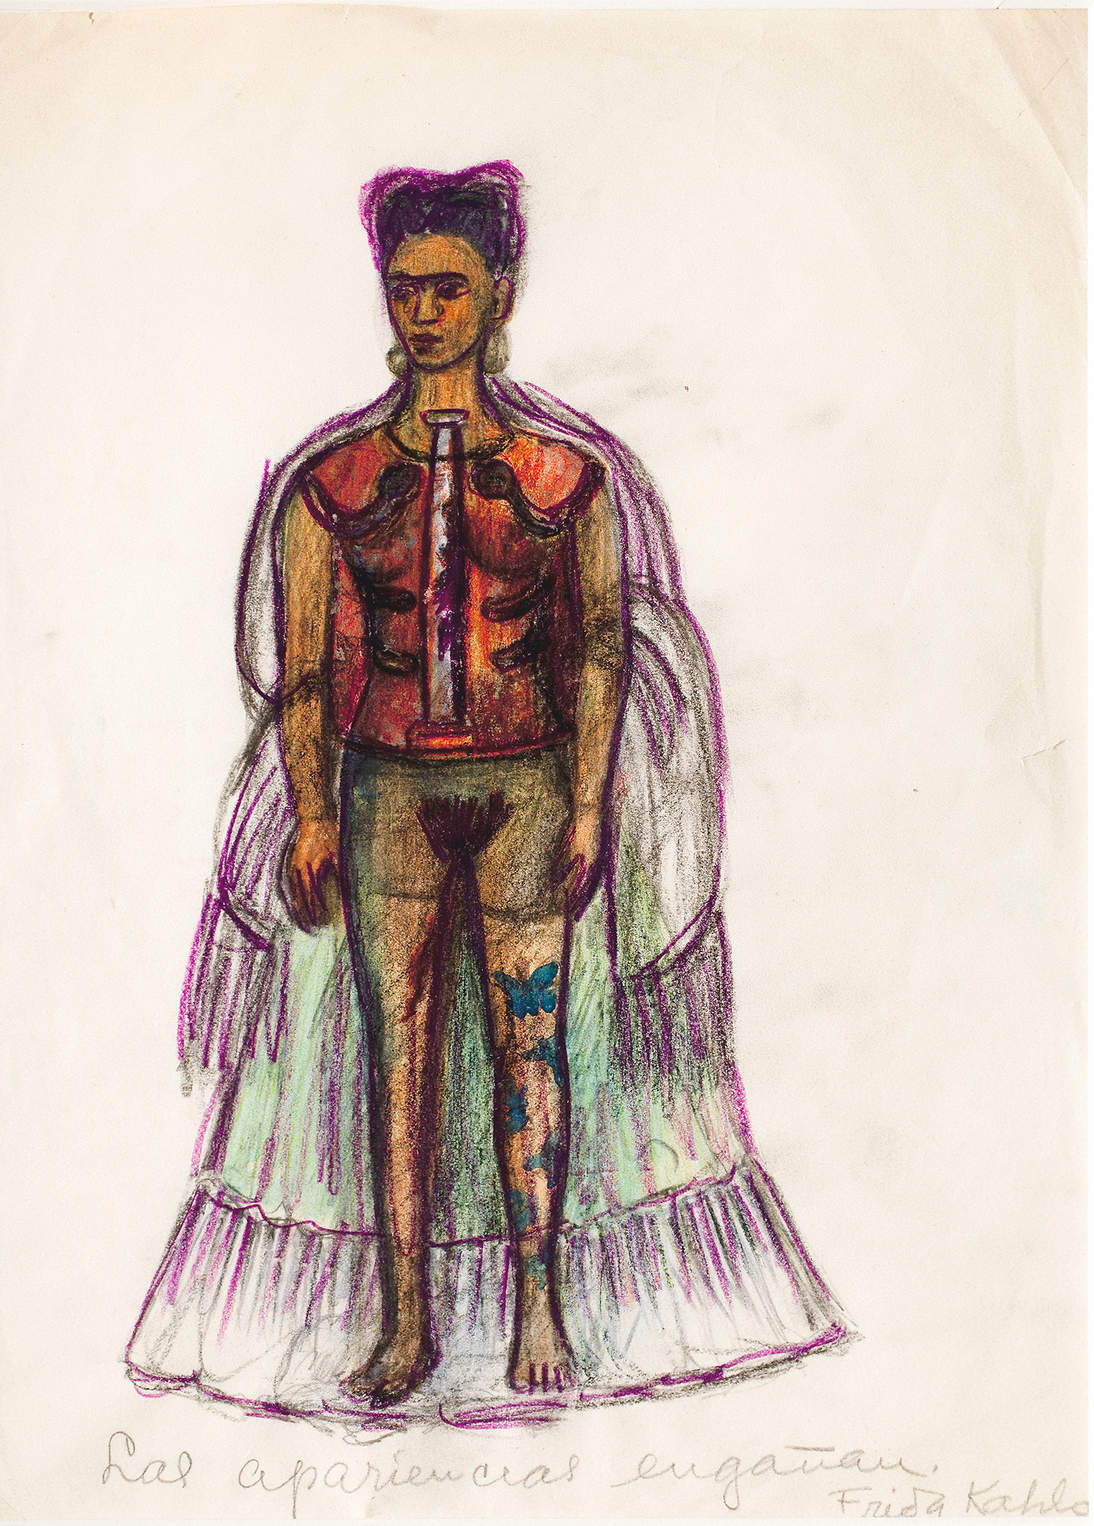 "Frida Kahlo, ""Appearances Can Be Deceiving,"" No date. Charcoal and pencil on paper, 11.4 x 8.3 in.  (29 x 21 cm). Museo Frida Kahlo © 2020 Banco de México Diego Rivera & Frida Kahlo Museums Trust. Av. 5 de Mayo No. 2, Col. Centro, alc. Cuauhtémoc, C.P. 06000, Mexico City / Artists Rights Society (ARS), New York"